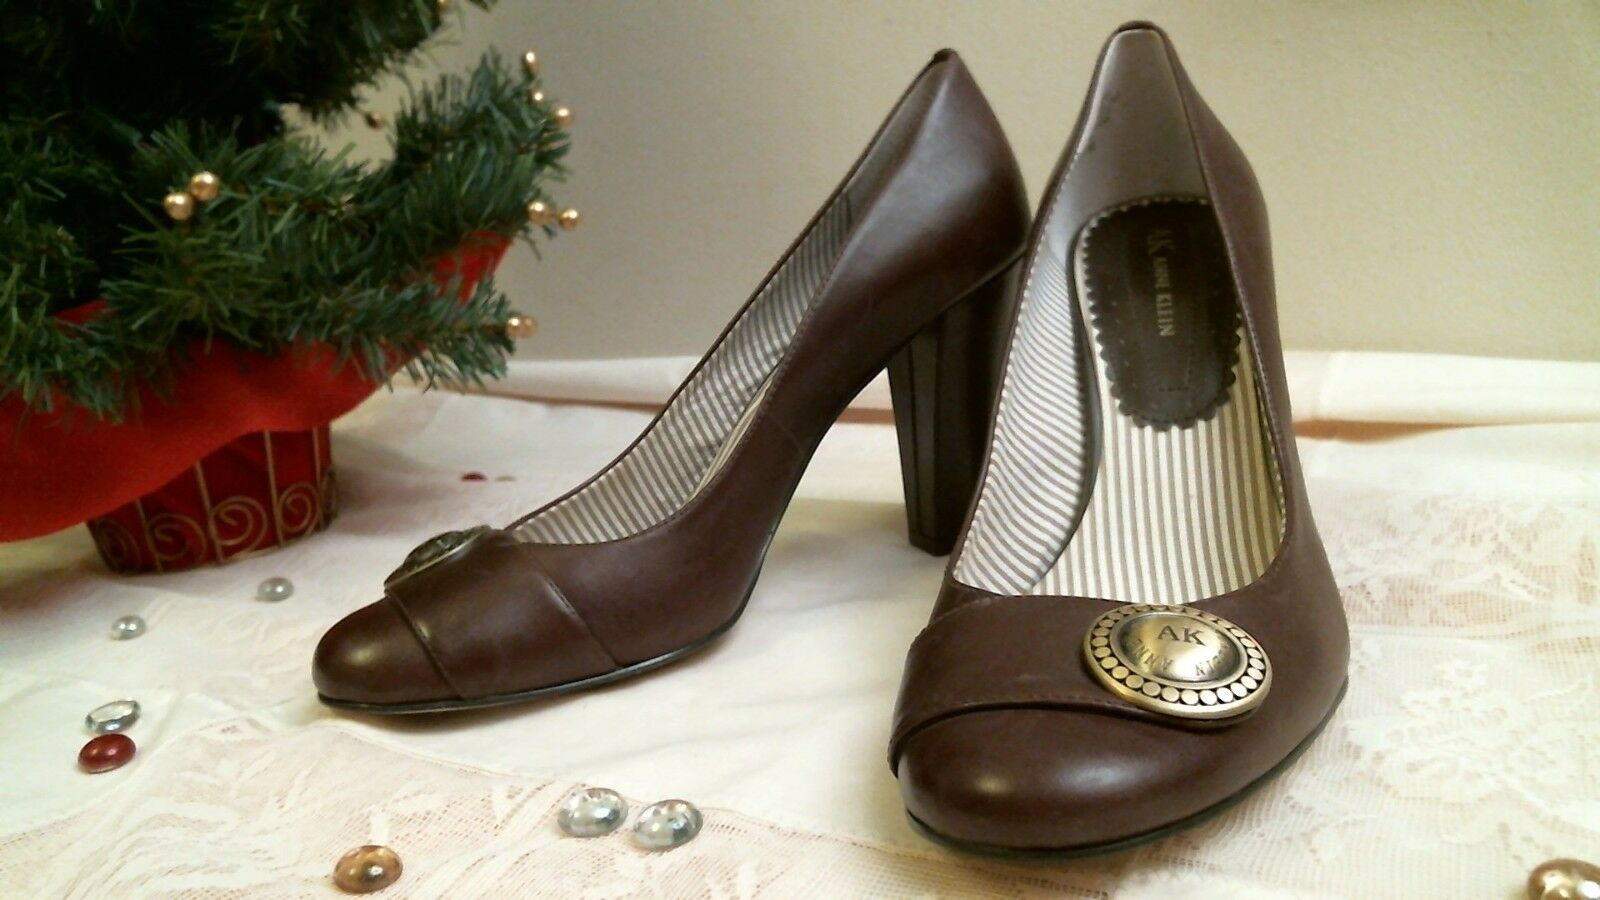 AK BROWN ANNE KLEIN size 8 1/2 M BROWN AK LEATHER slip on pumps 7ecd13